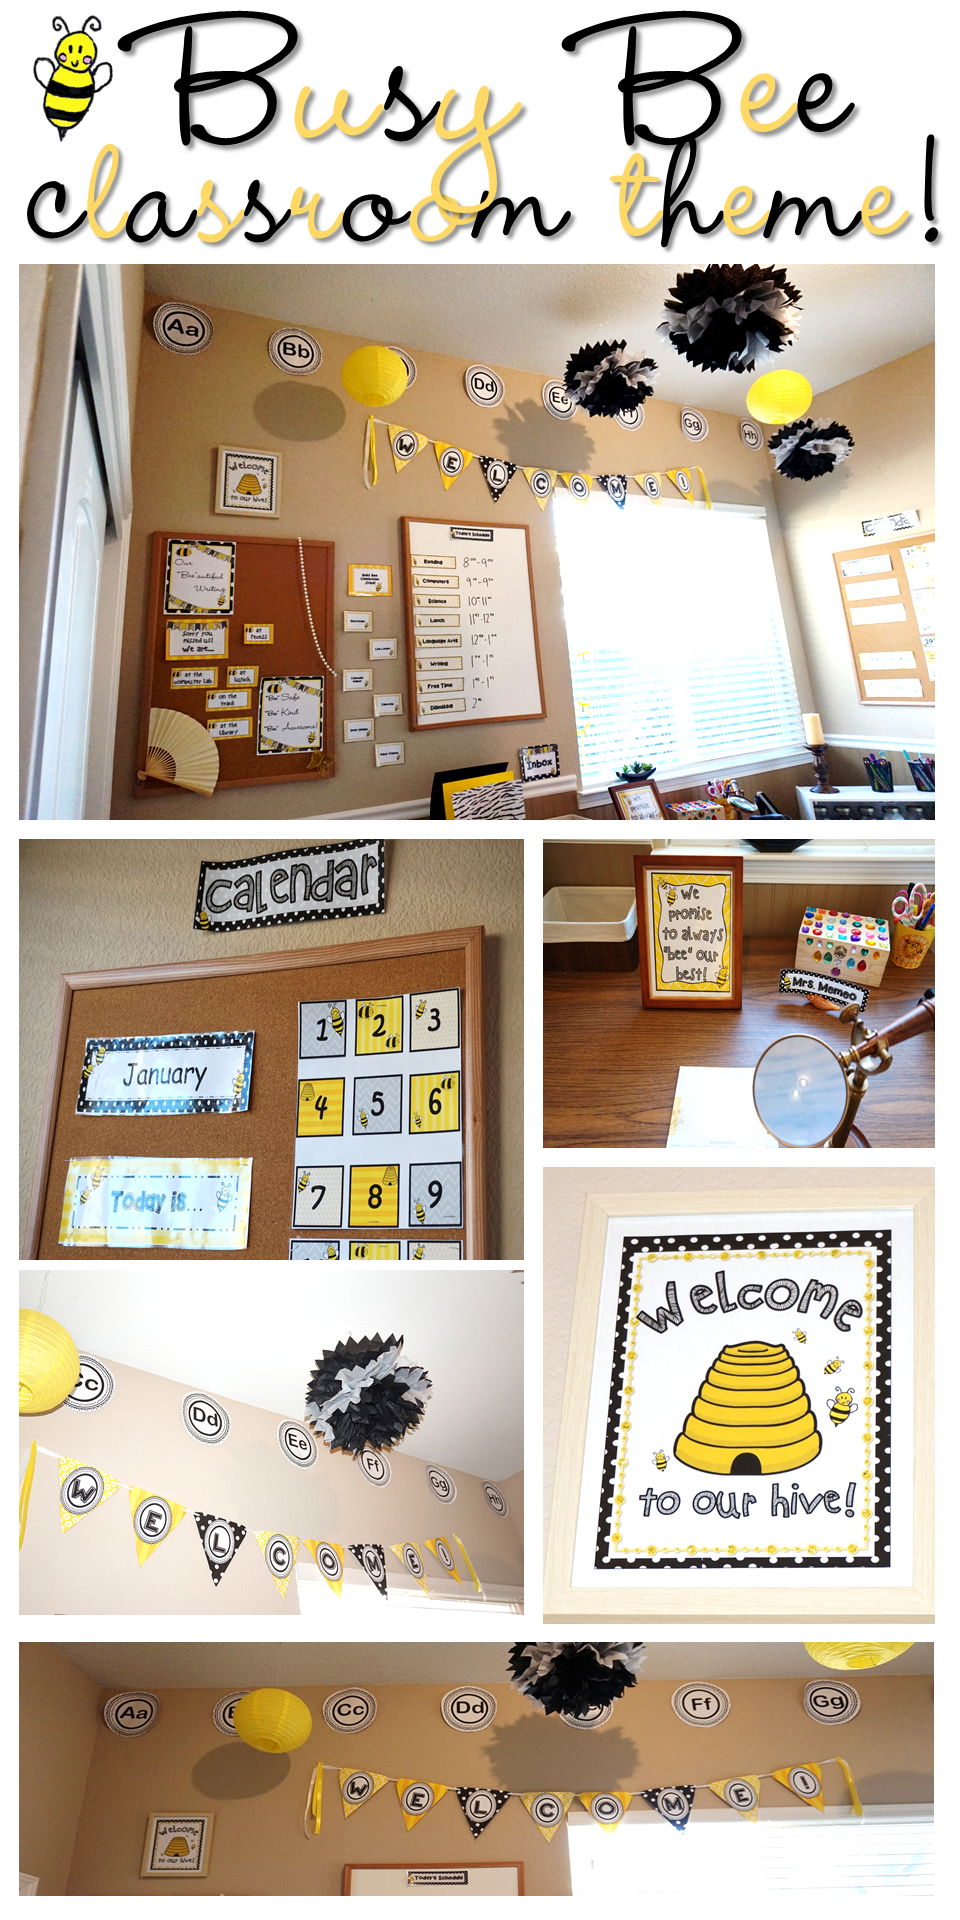 This Pack Has Everything You Need To Decorate Your Beeautiful Classroom And Keep Busy Bees Happy